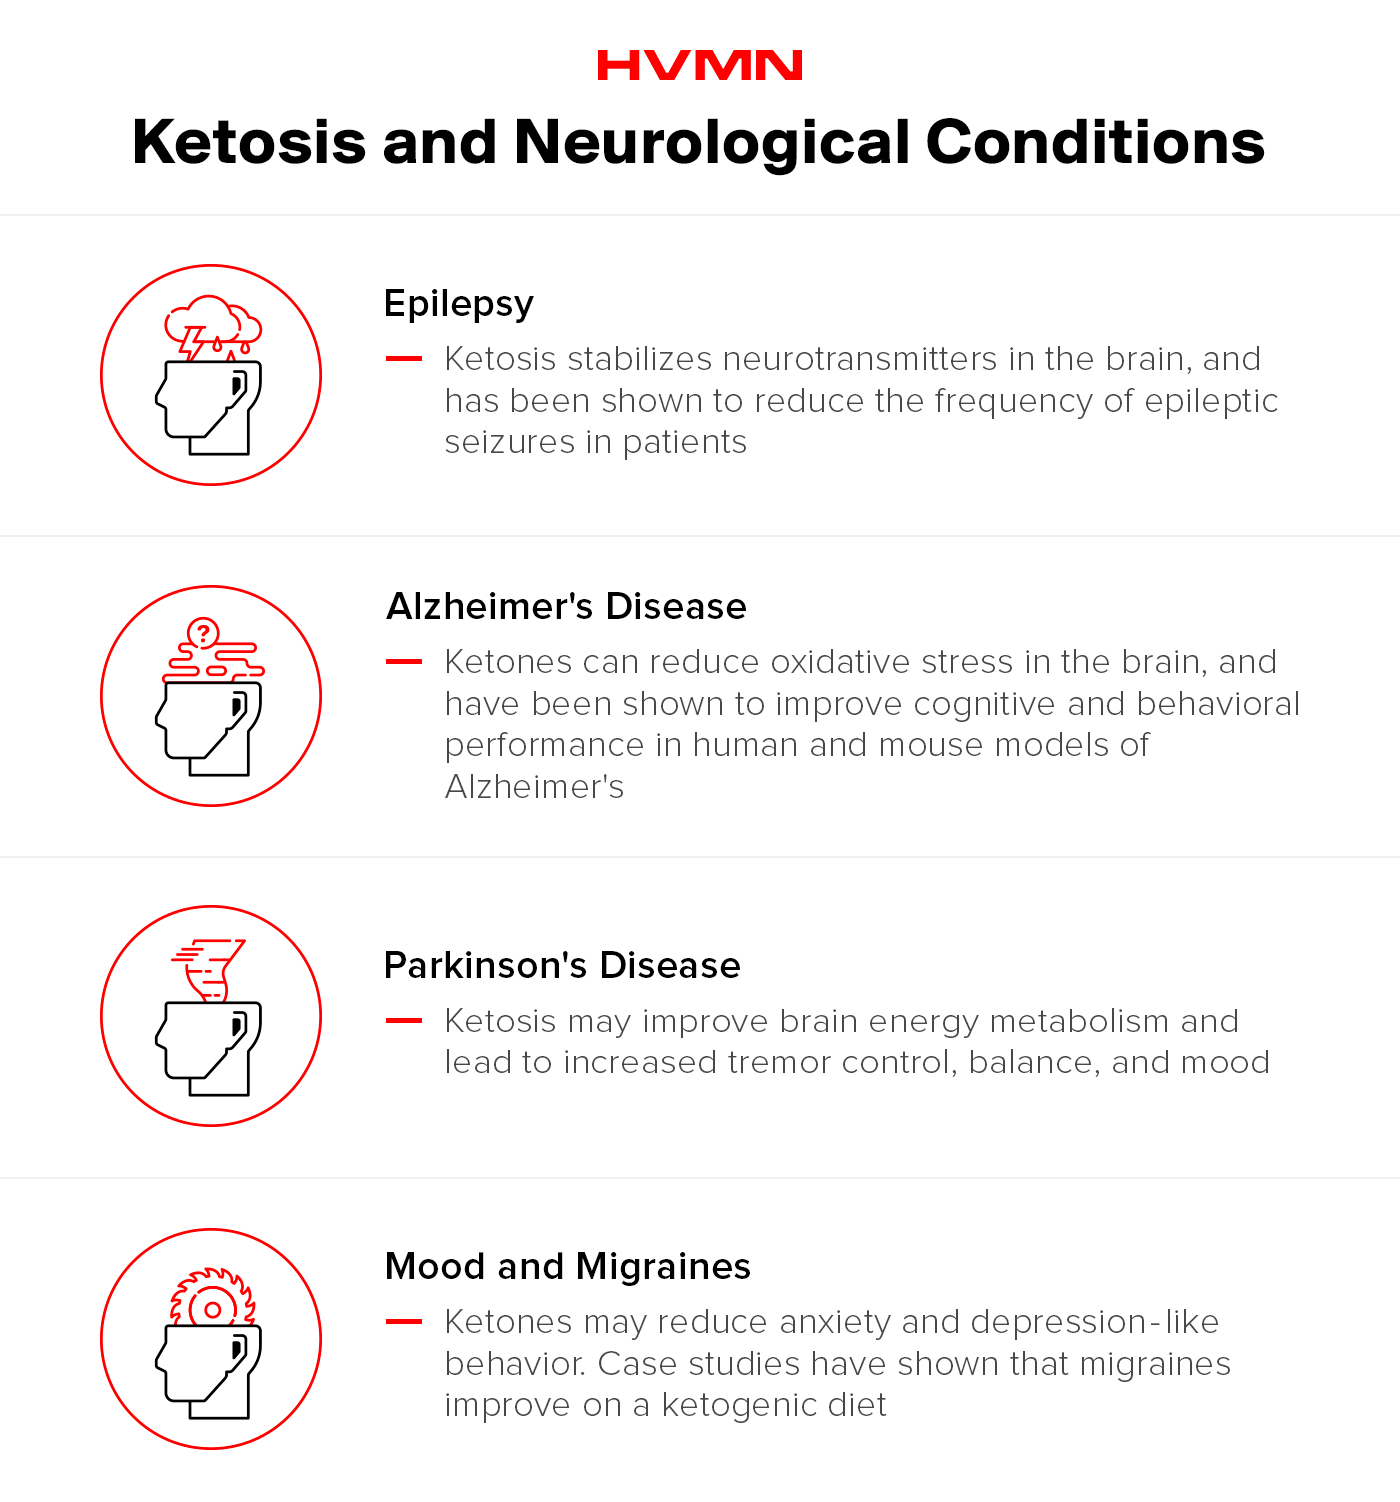 The applications of ketosis for neurological conditions.